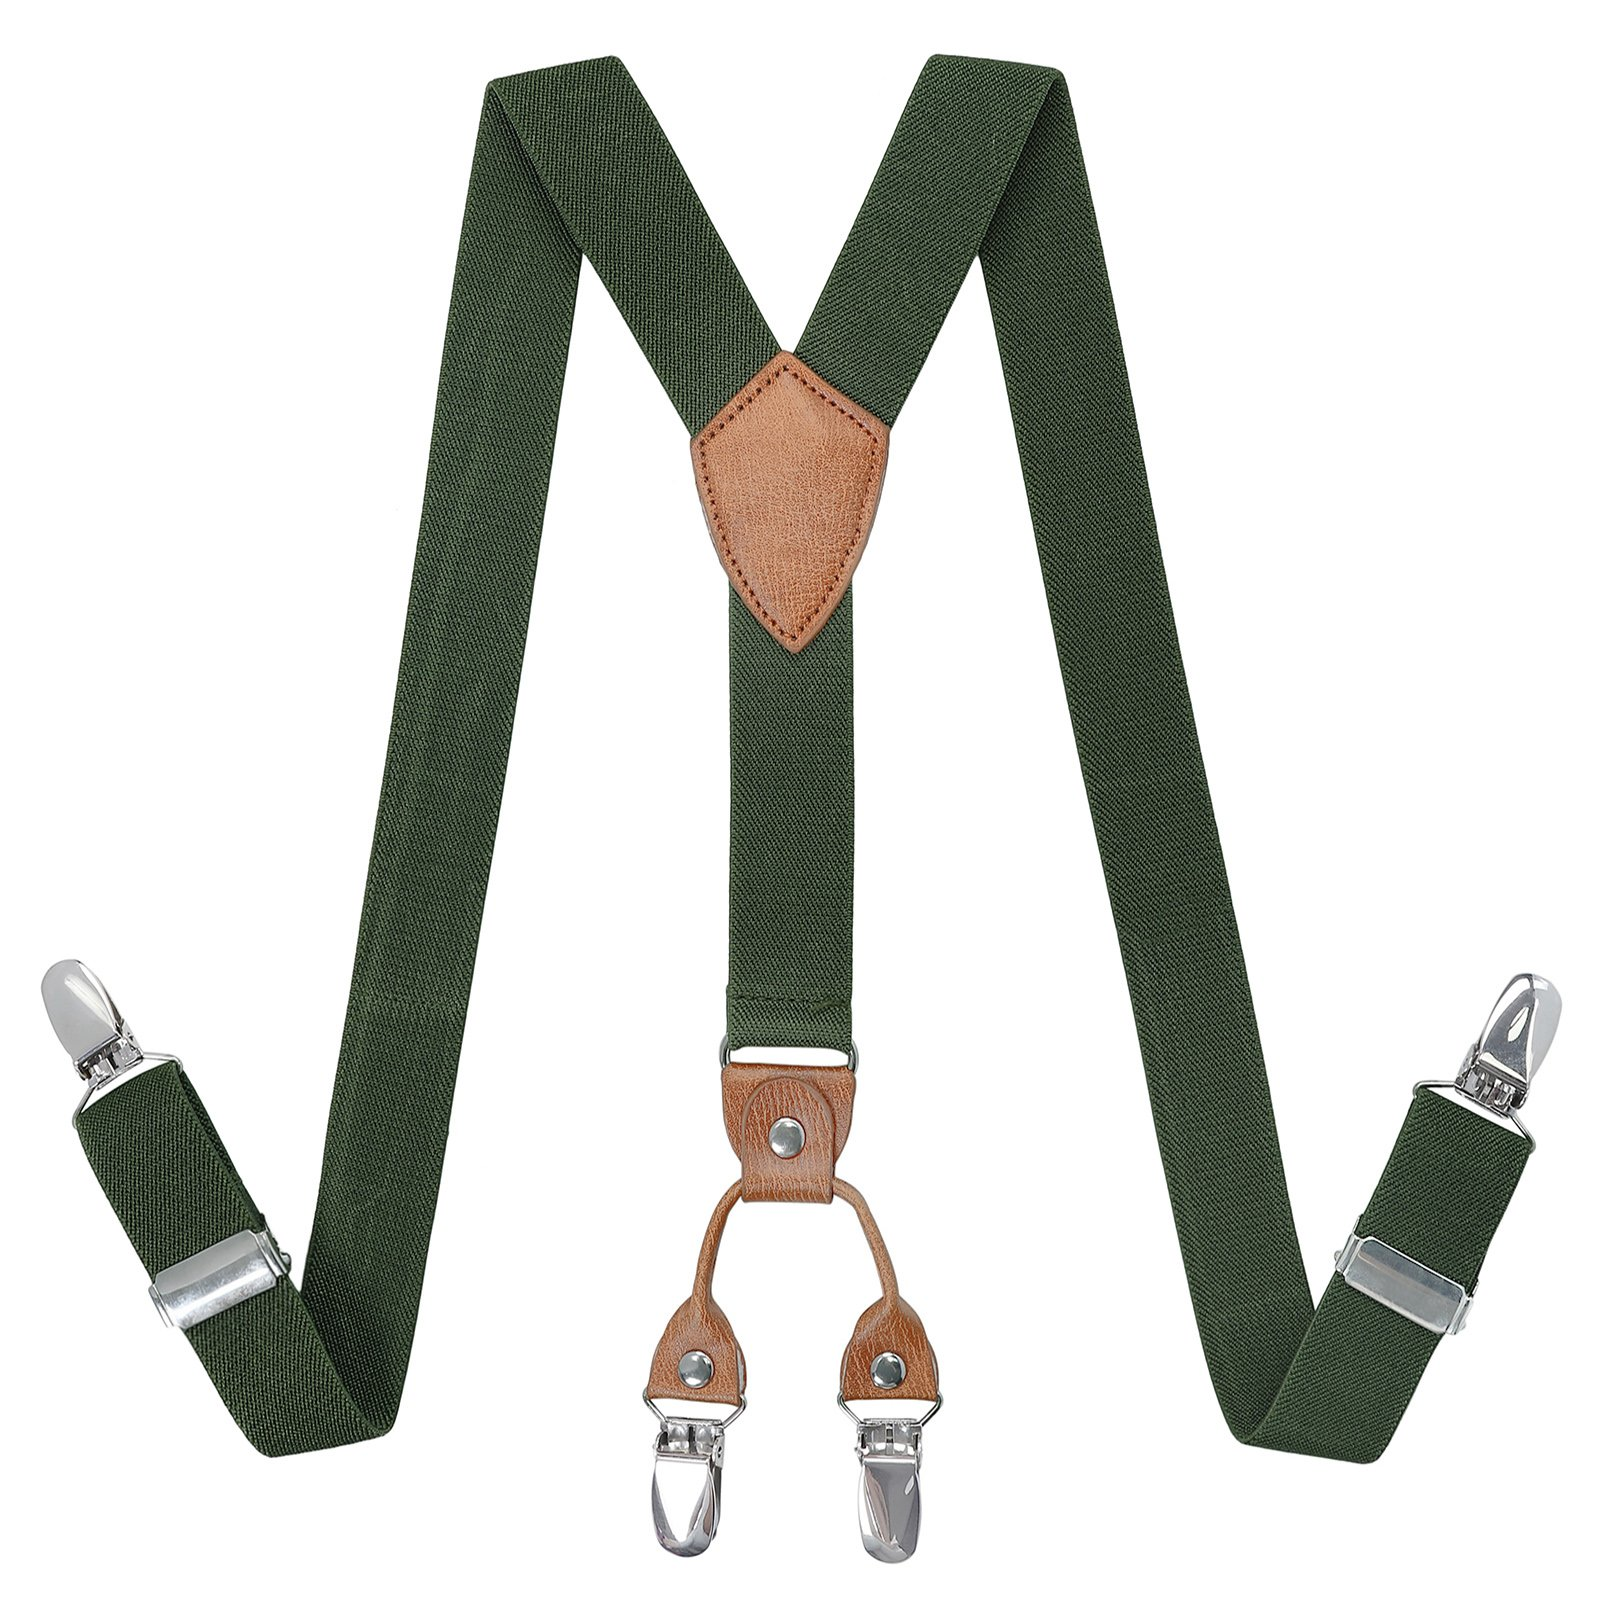 Kajeer Toddlers Boys Mens Adjustable Suspenders - Y Back Heavy Duty Suspenders for School Uniforms Tuxedos (43.3 Inch (5 Feet Tall - 9 Feet Tall), Army green)